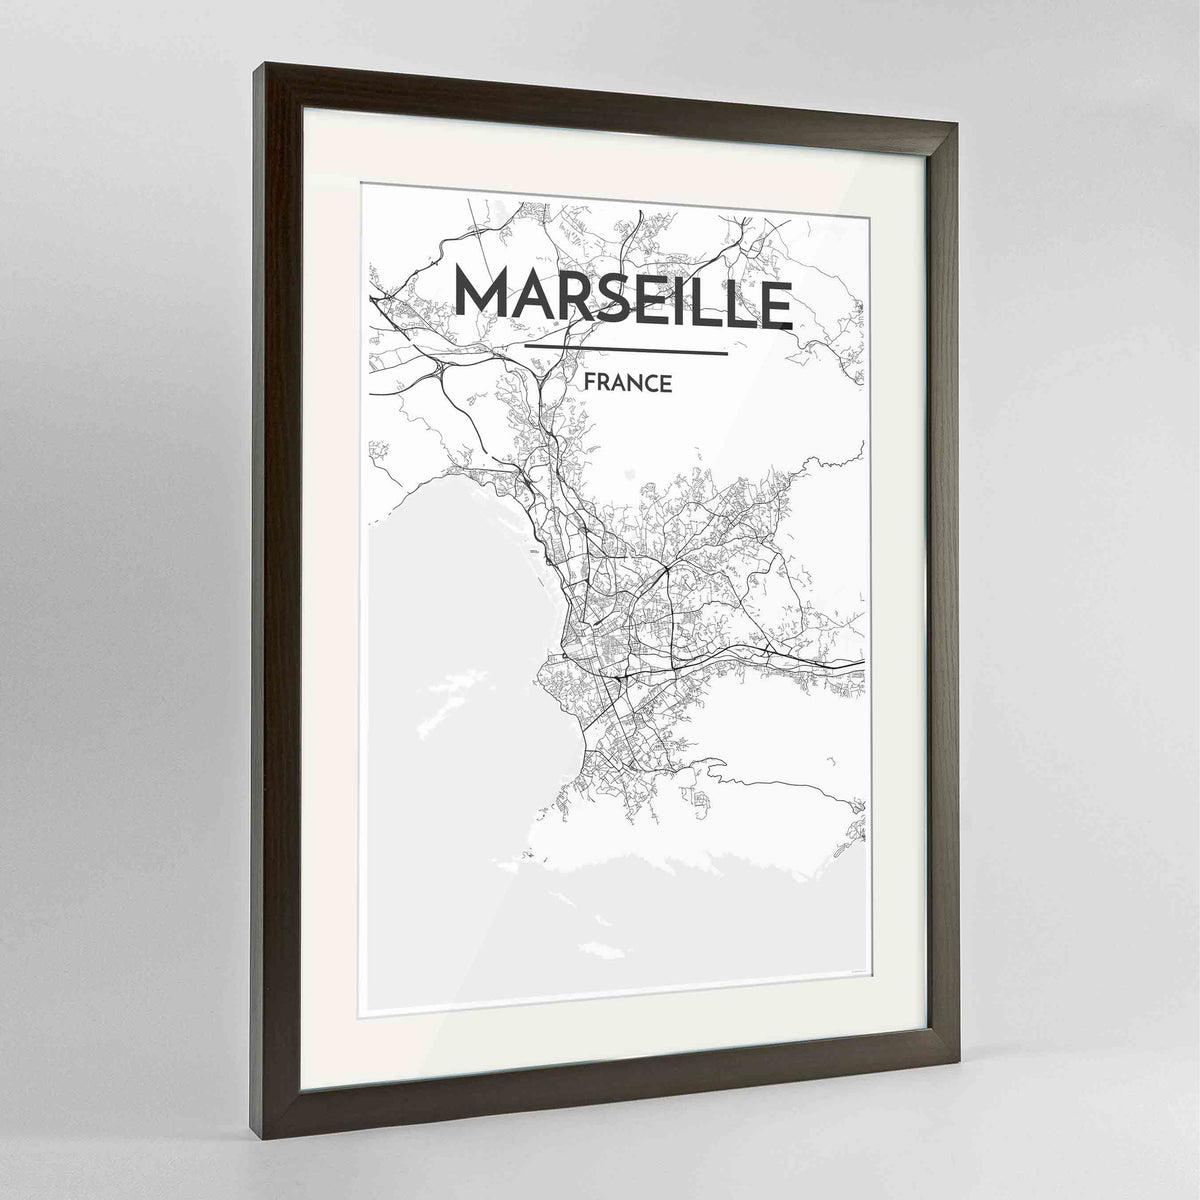 "Framed Marseille Map Art Print 24x36"" Contemporary Walnut frame Point Two Design Group"